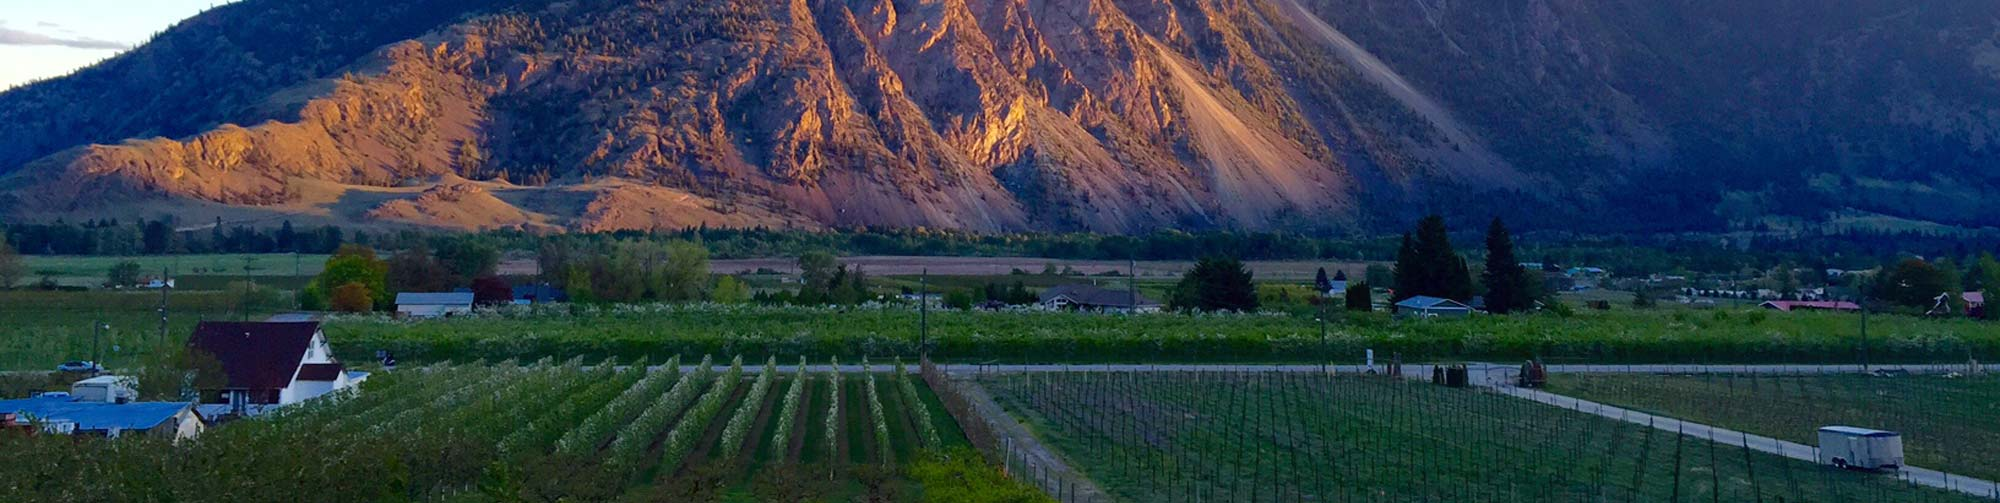 Evening sunset in Similkameen